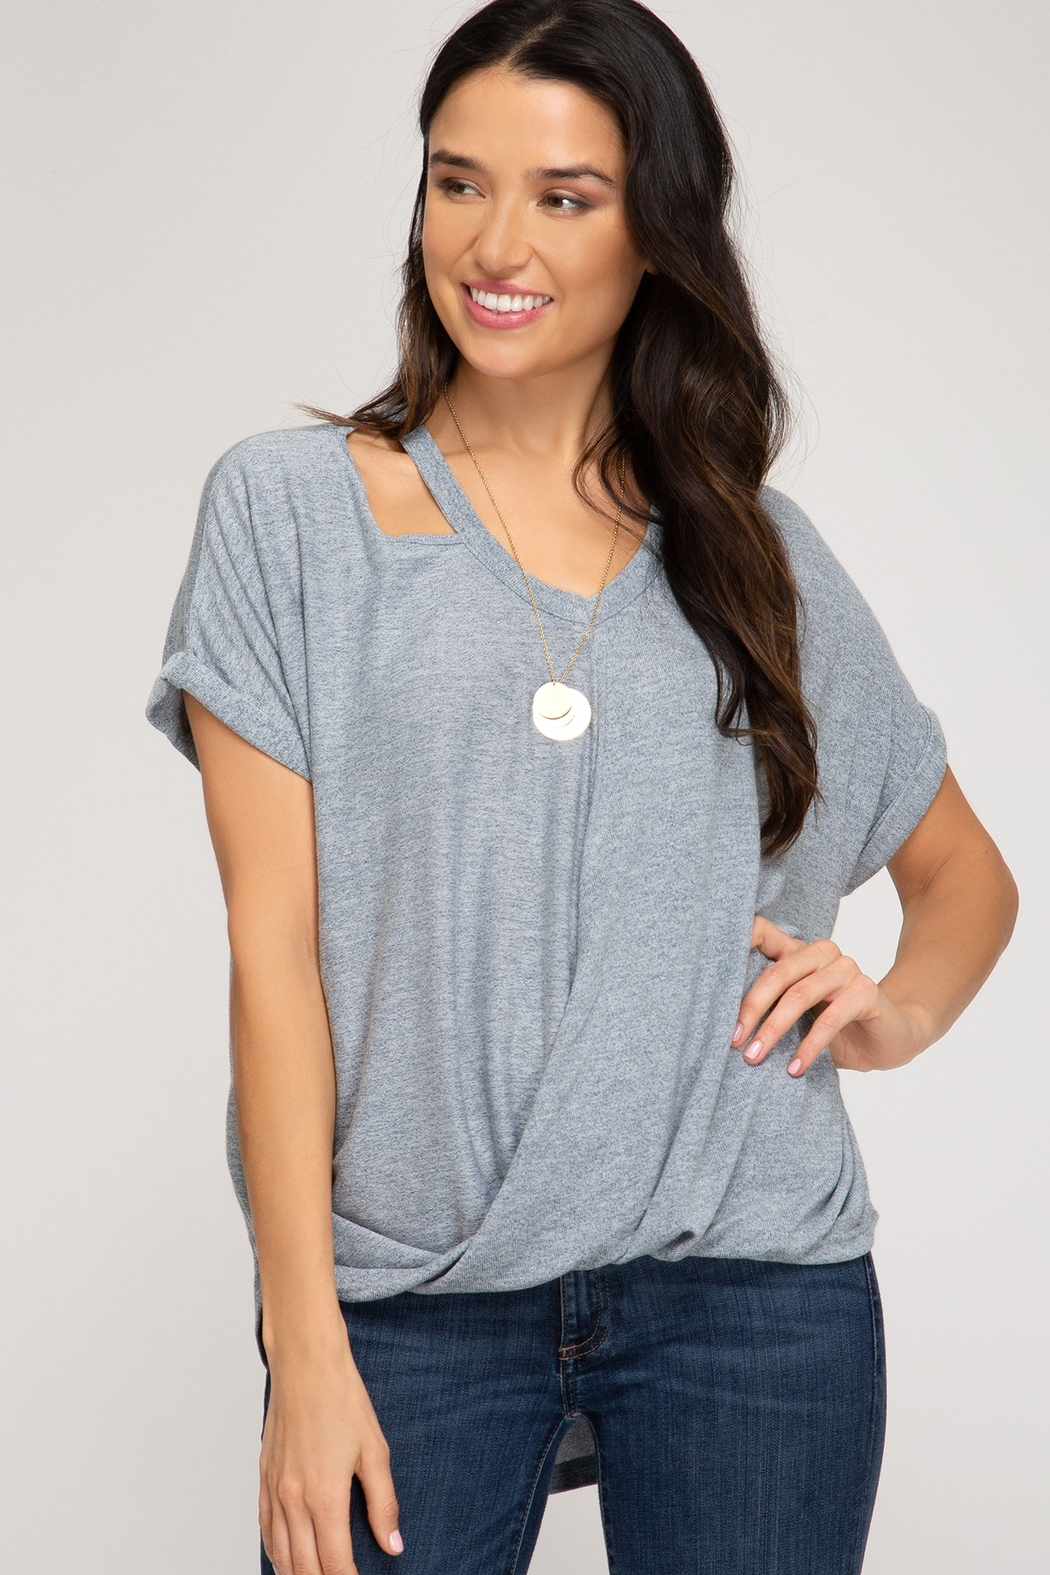 She and Sky Surpliced Top With Neck Cutouts - Main Image